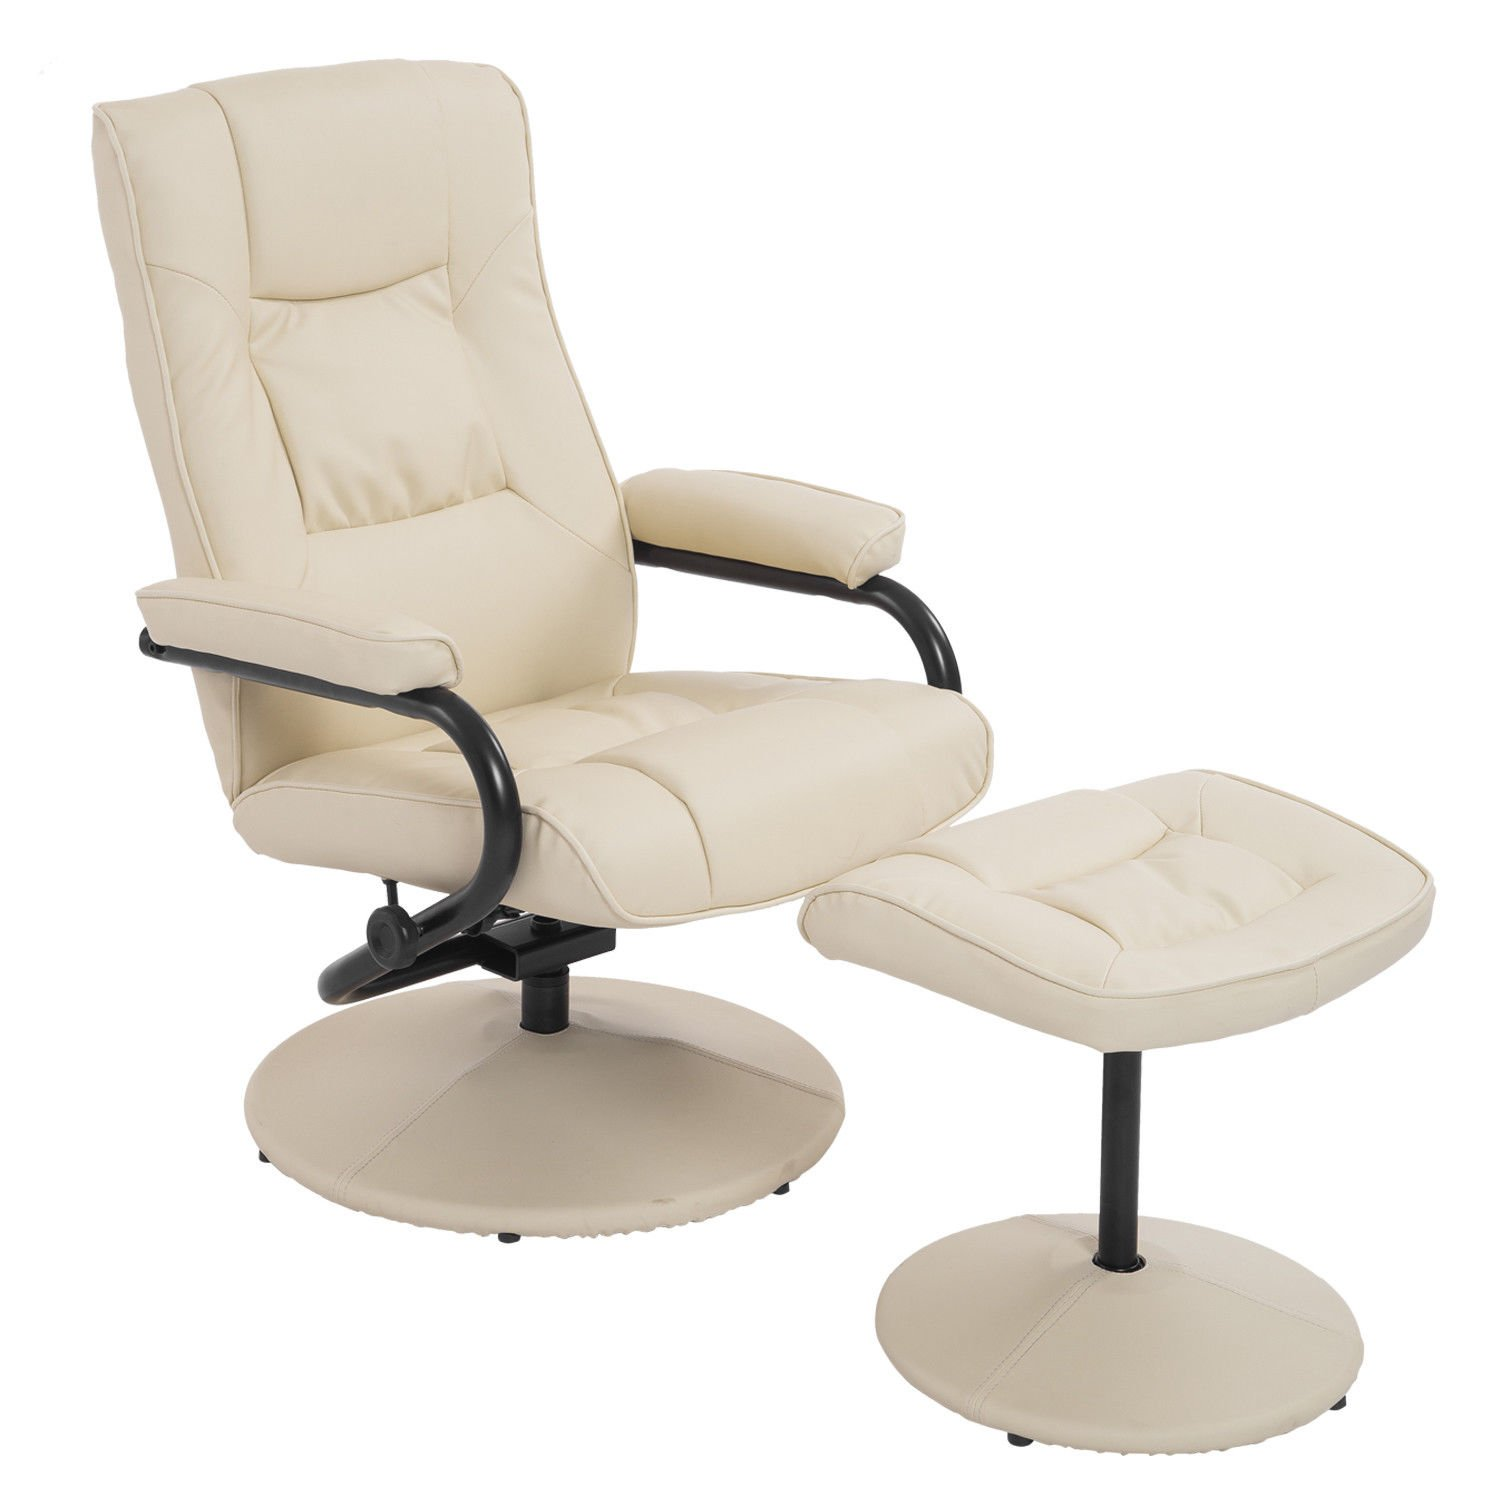 2PCS Cream Recliner Chair Armchair Lounge Seat Sponge Padded Armrest Footrest Stool Ottoman Adjustable Backrest Recliner Home Office Living Room Lounging Rest Sleeping Entertainment Relaxation Use by Almacén